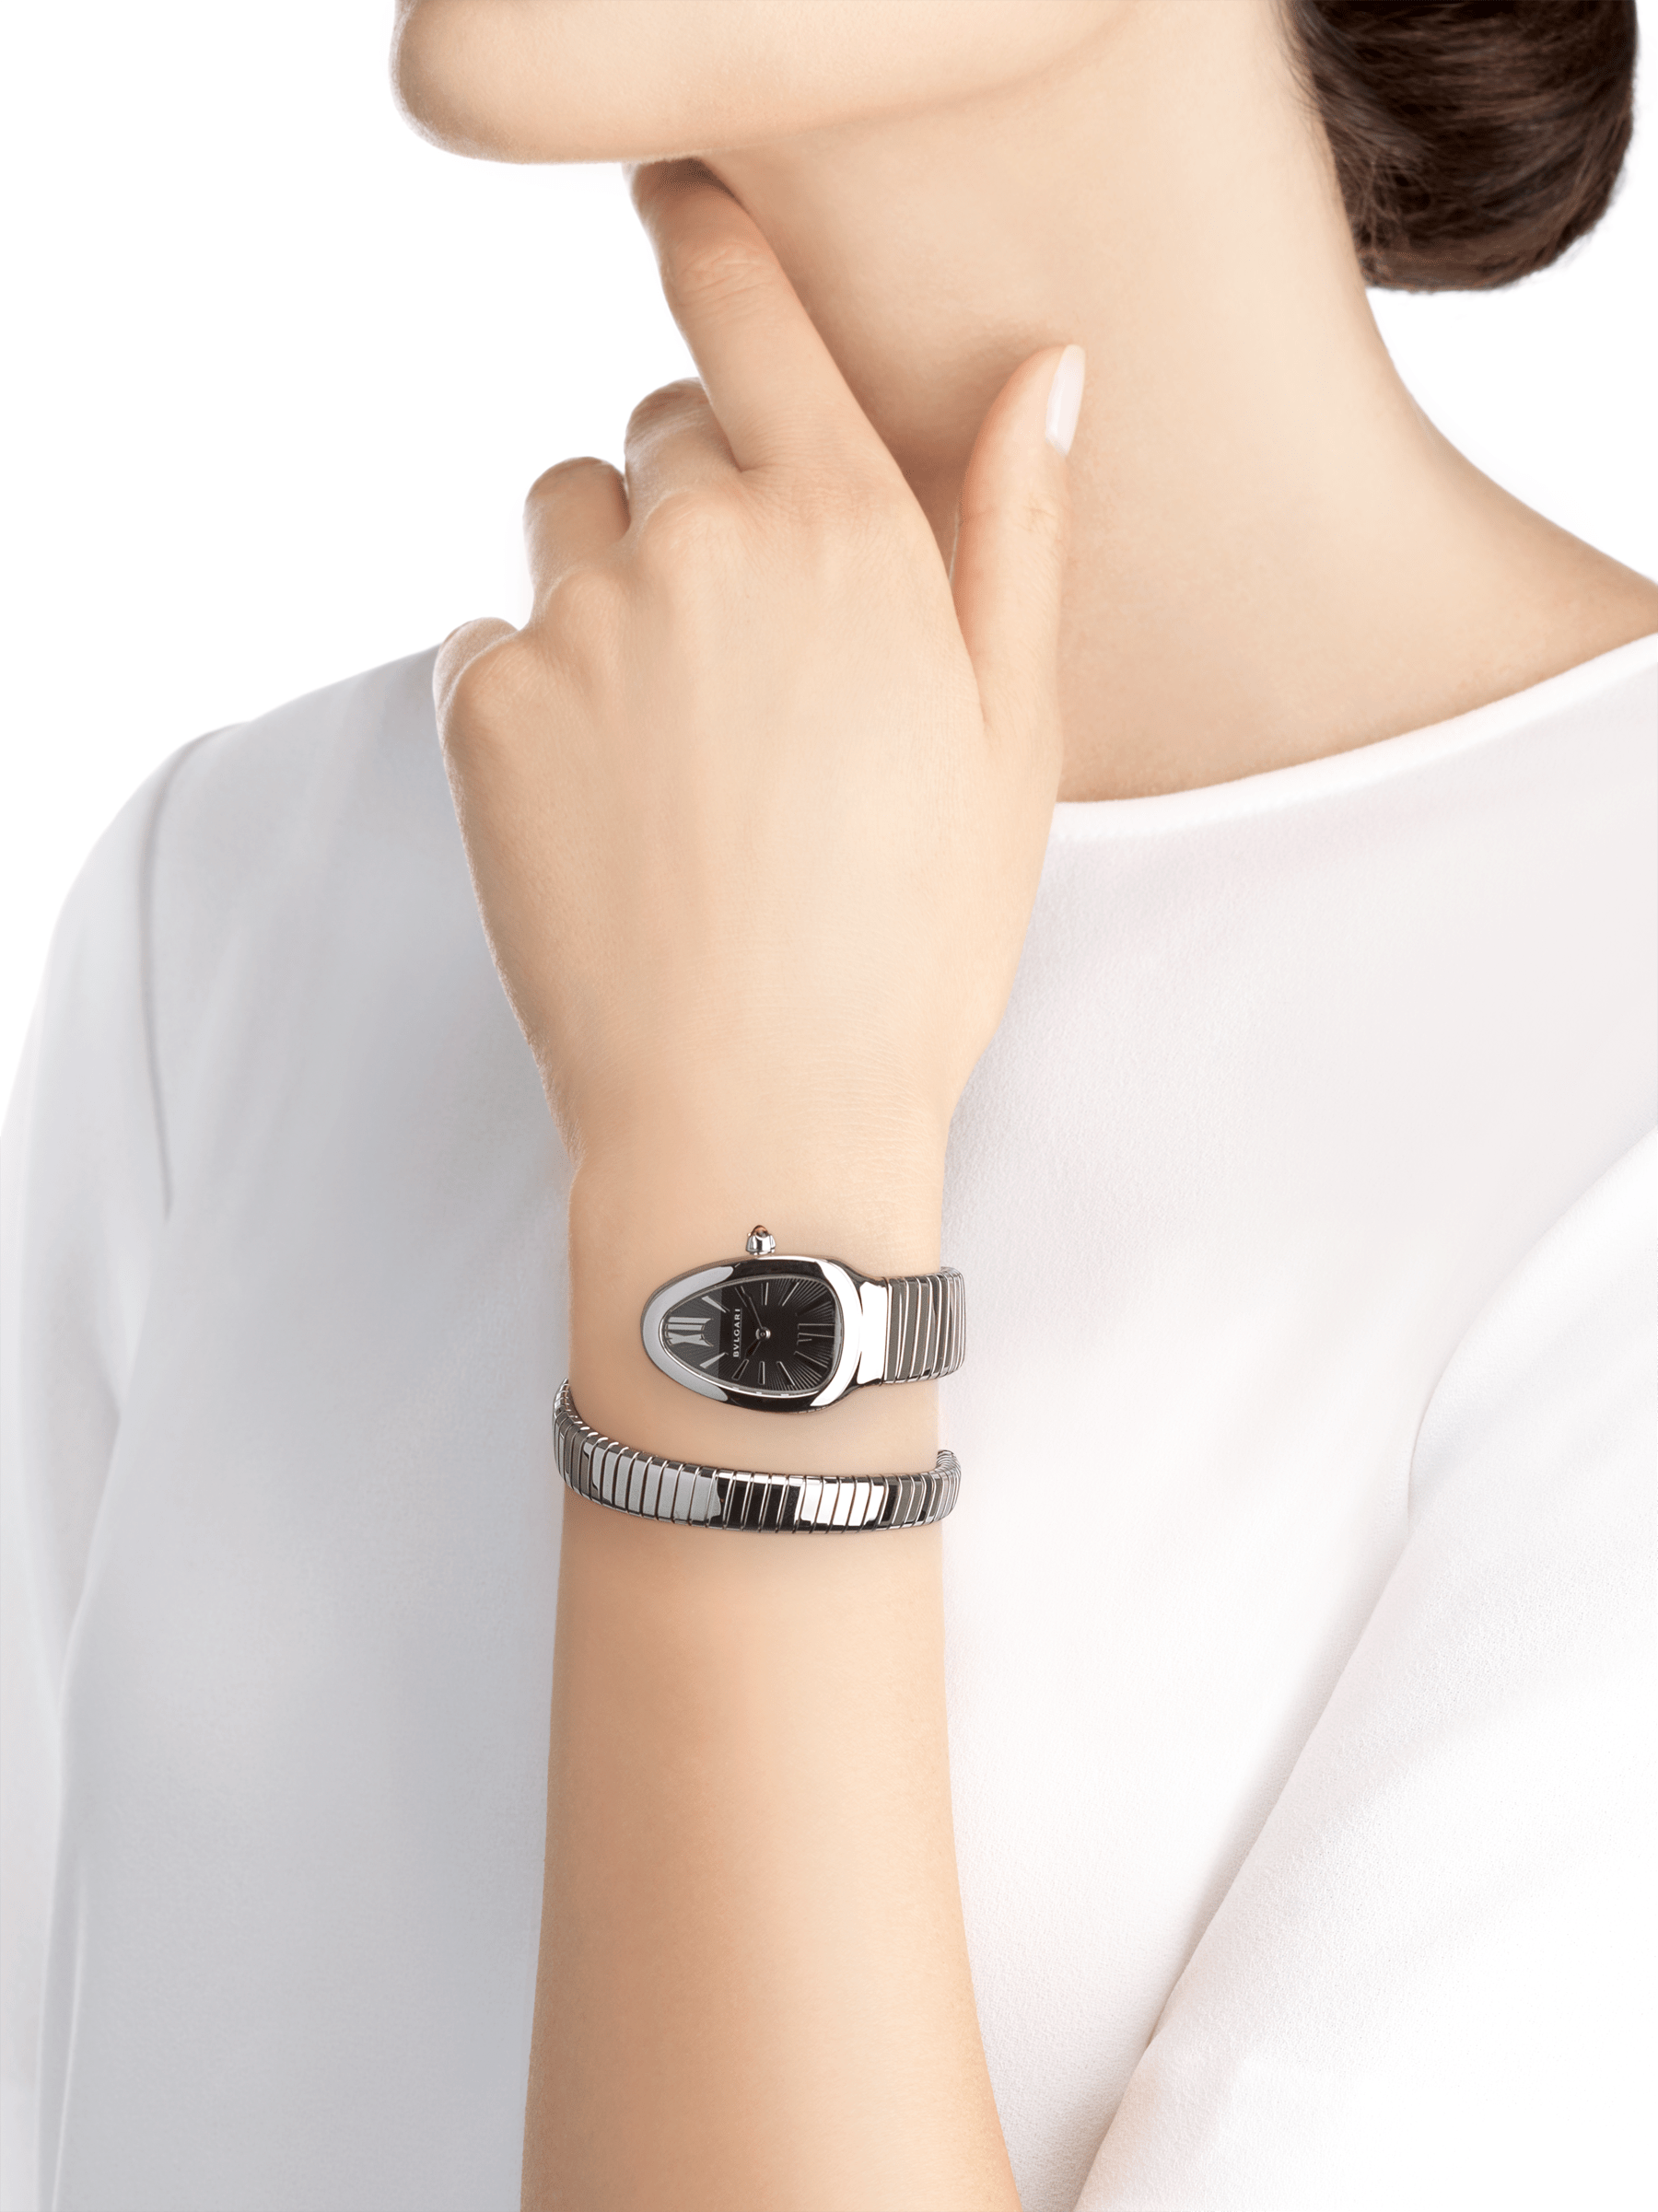 Serpenti Tubogas single spiral watch in stainless steel case and bracelet, with black opaline dial. SrpntTubogas-black-dial2 image 4